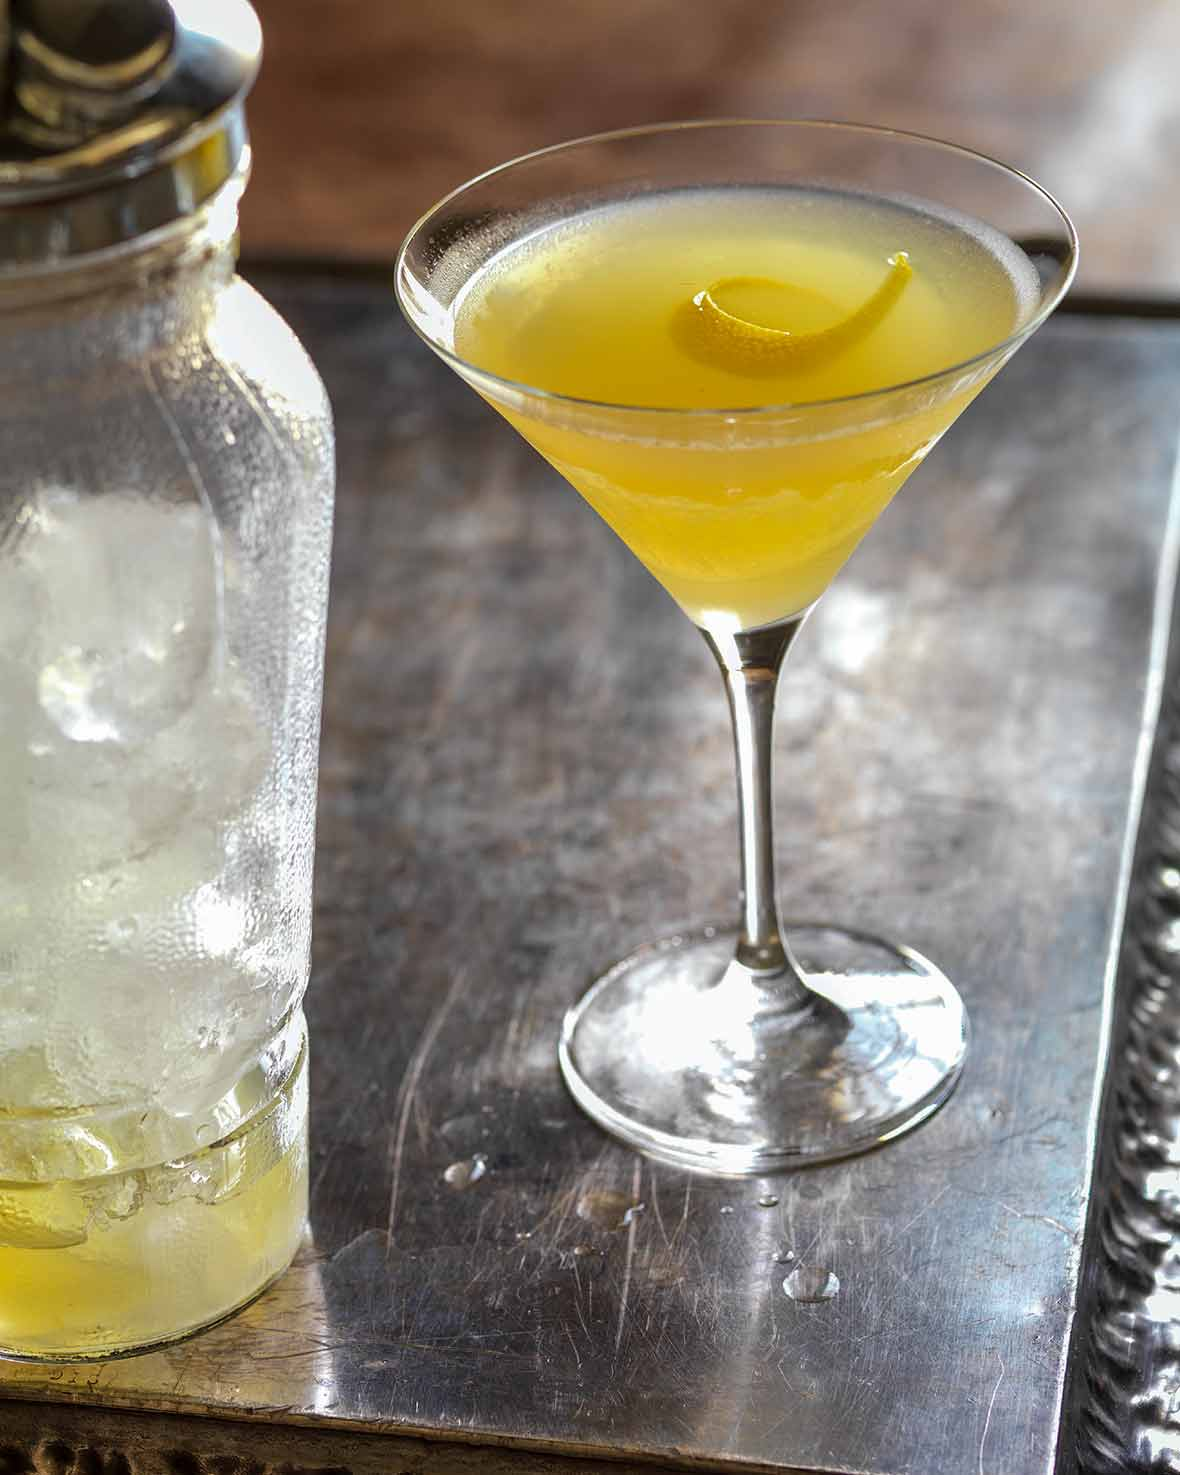 Martini glass filled with yellow Bee's Knees cocktail--honey, gin, and lemon--with a lemon twist, a shaker on the side